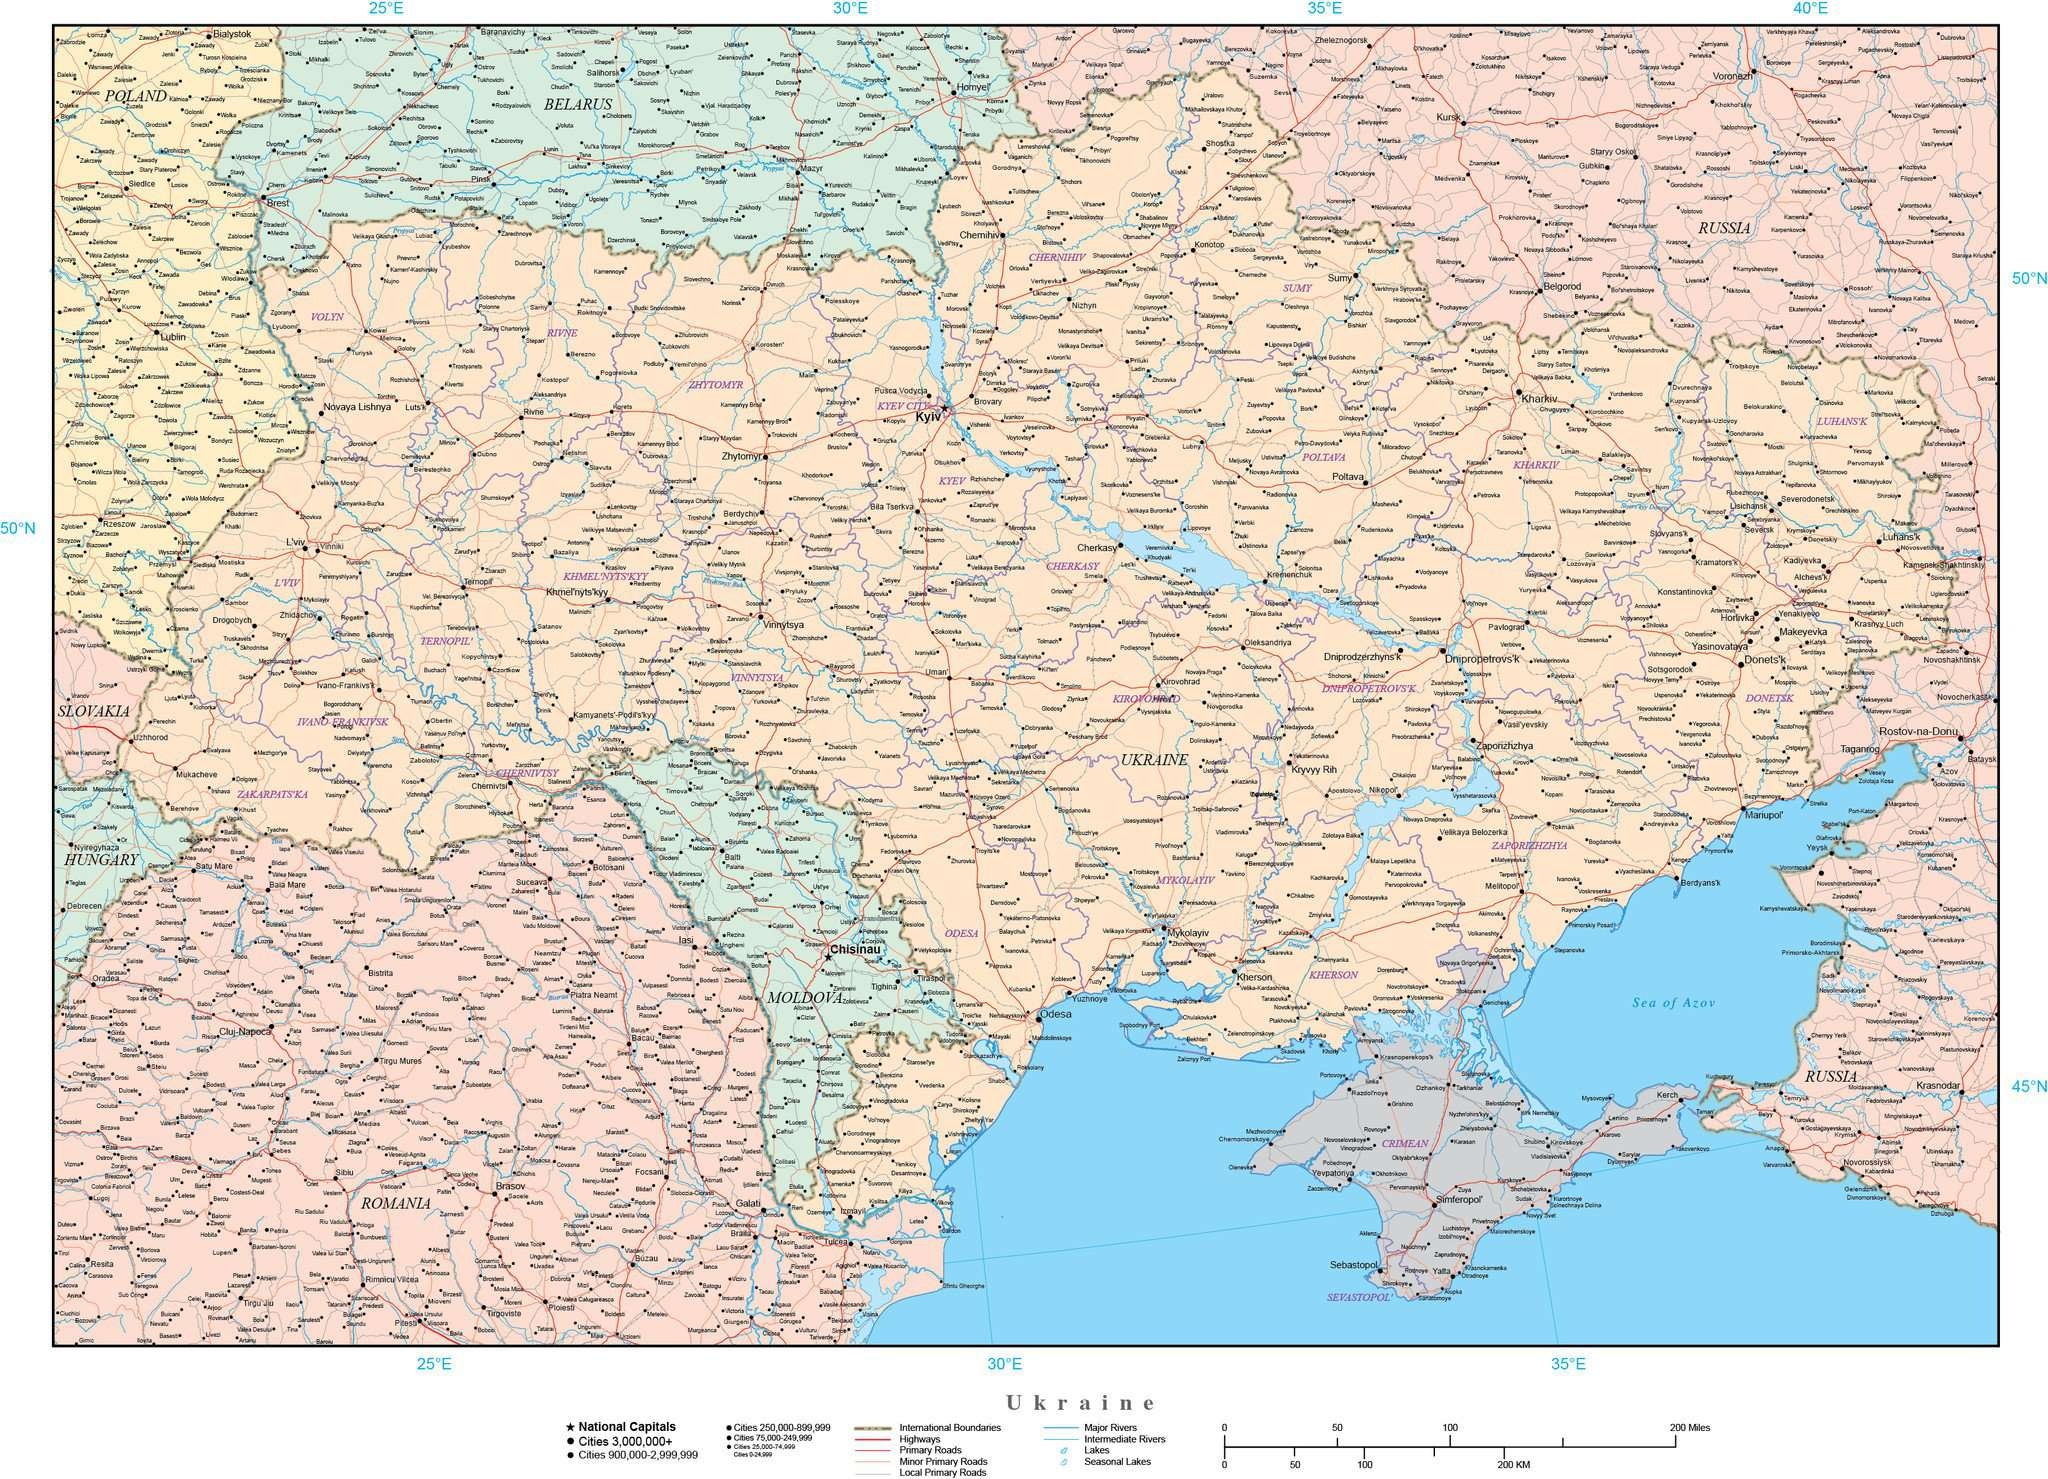 Ukraine and Crimea Map with Cities and Provinces on ukraine jersey, ukraine countryside, ukraine and europe map, ukraine country, ukraine and israel map, ukraine and turkey map, eastern front ww2 map, middle east and north africa map, ukraine and moldova map, ukraine crimea peninsula map, ukraine and armenia map, ukraine cities and towns, ukraine neighboring countries, ukraine map and cities, ukraine and greece map, ukraine and syria map, ukraine and surrounding countries, ukraine russia, ukraine map and capital, ukraine flag,